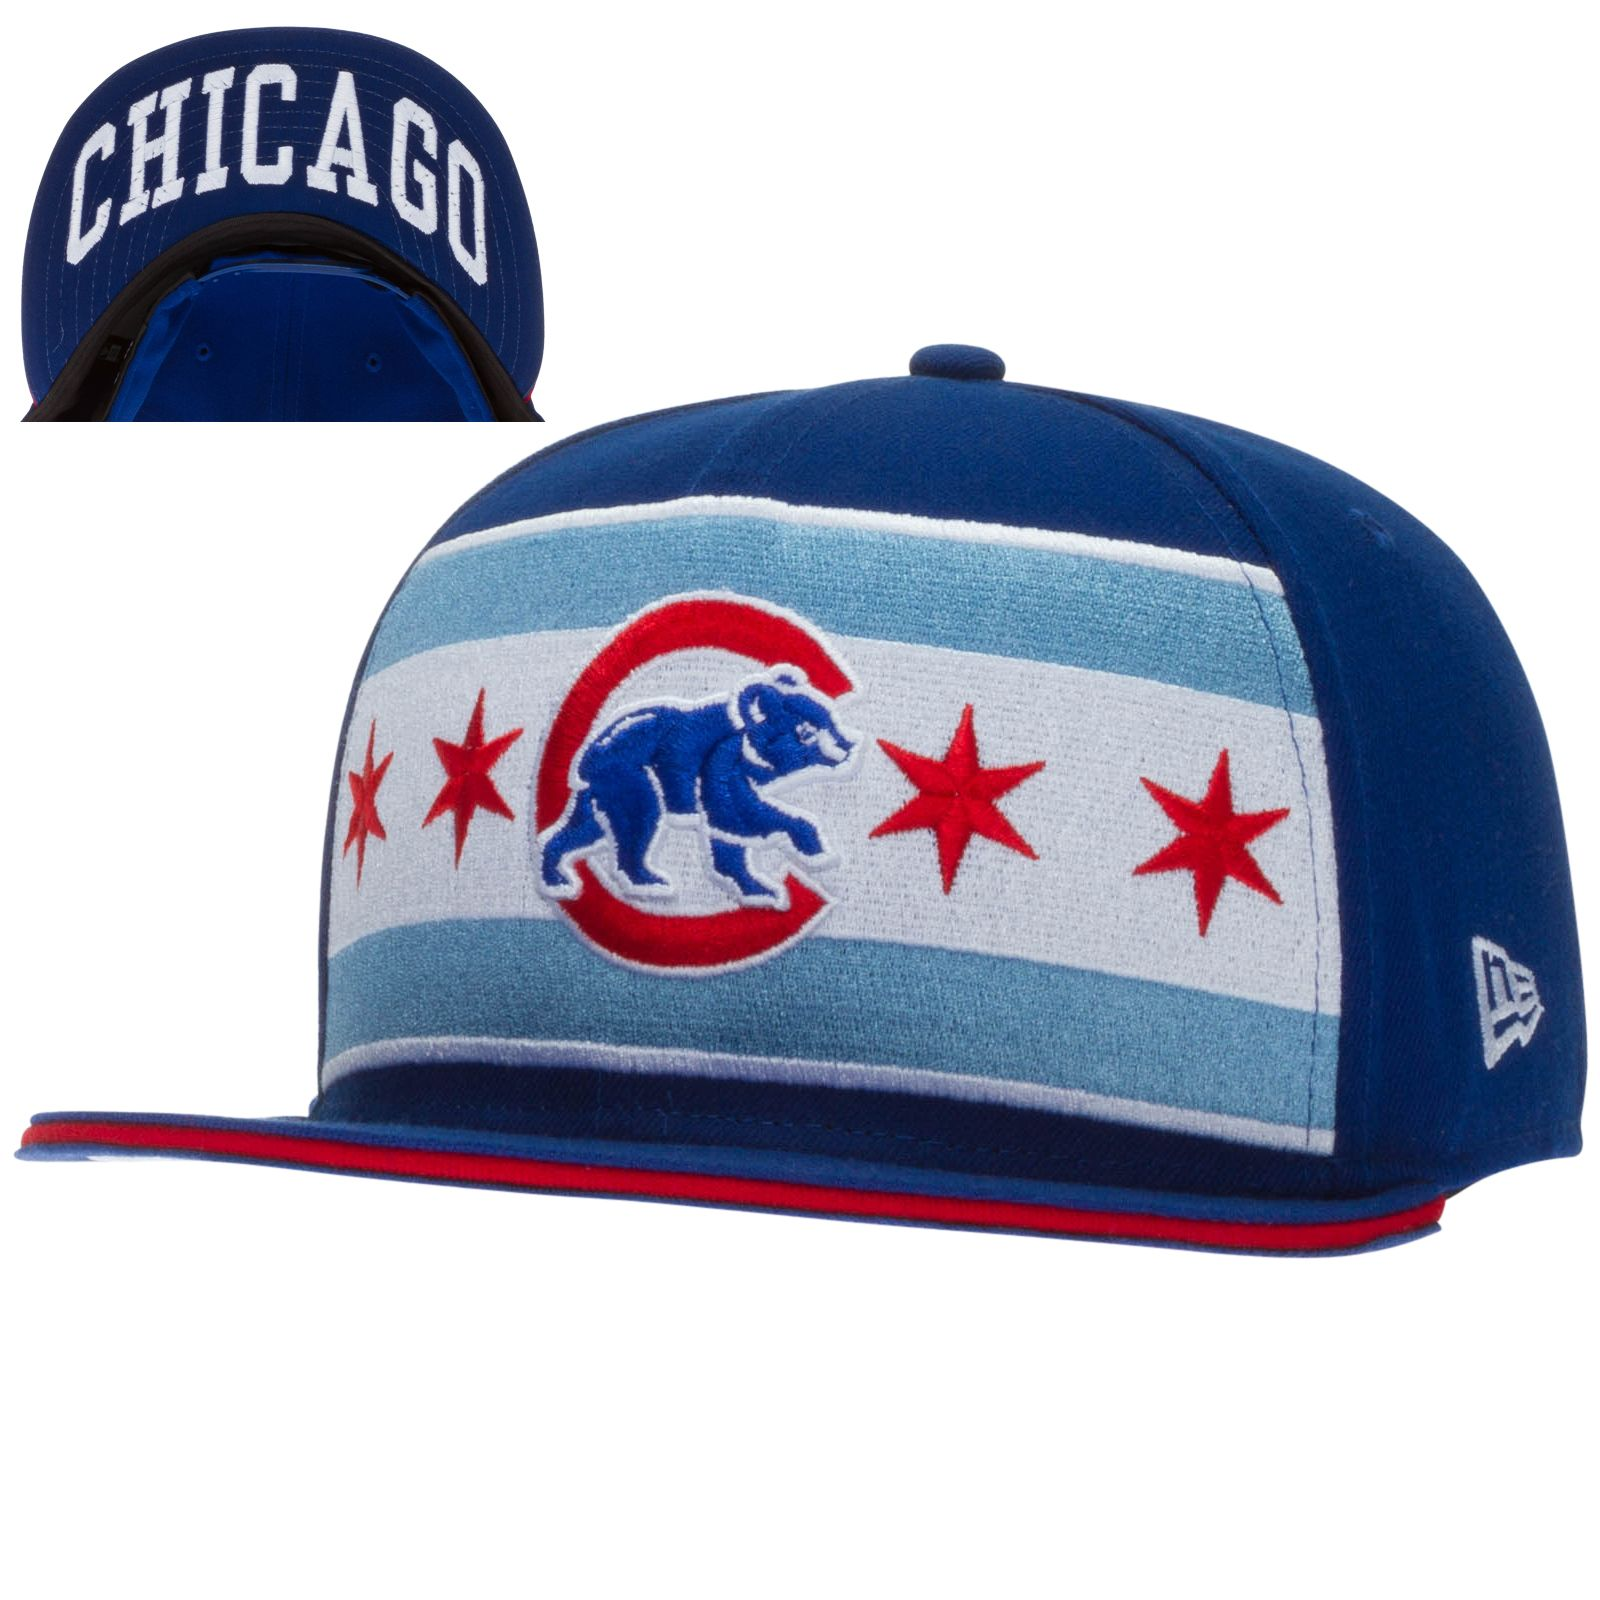 Chicago Cubs Hat With Chicago Flag